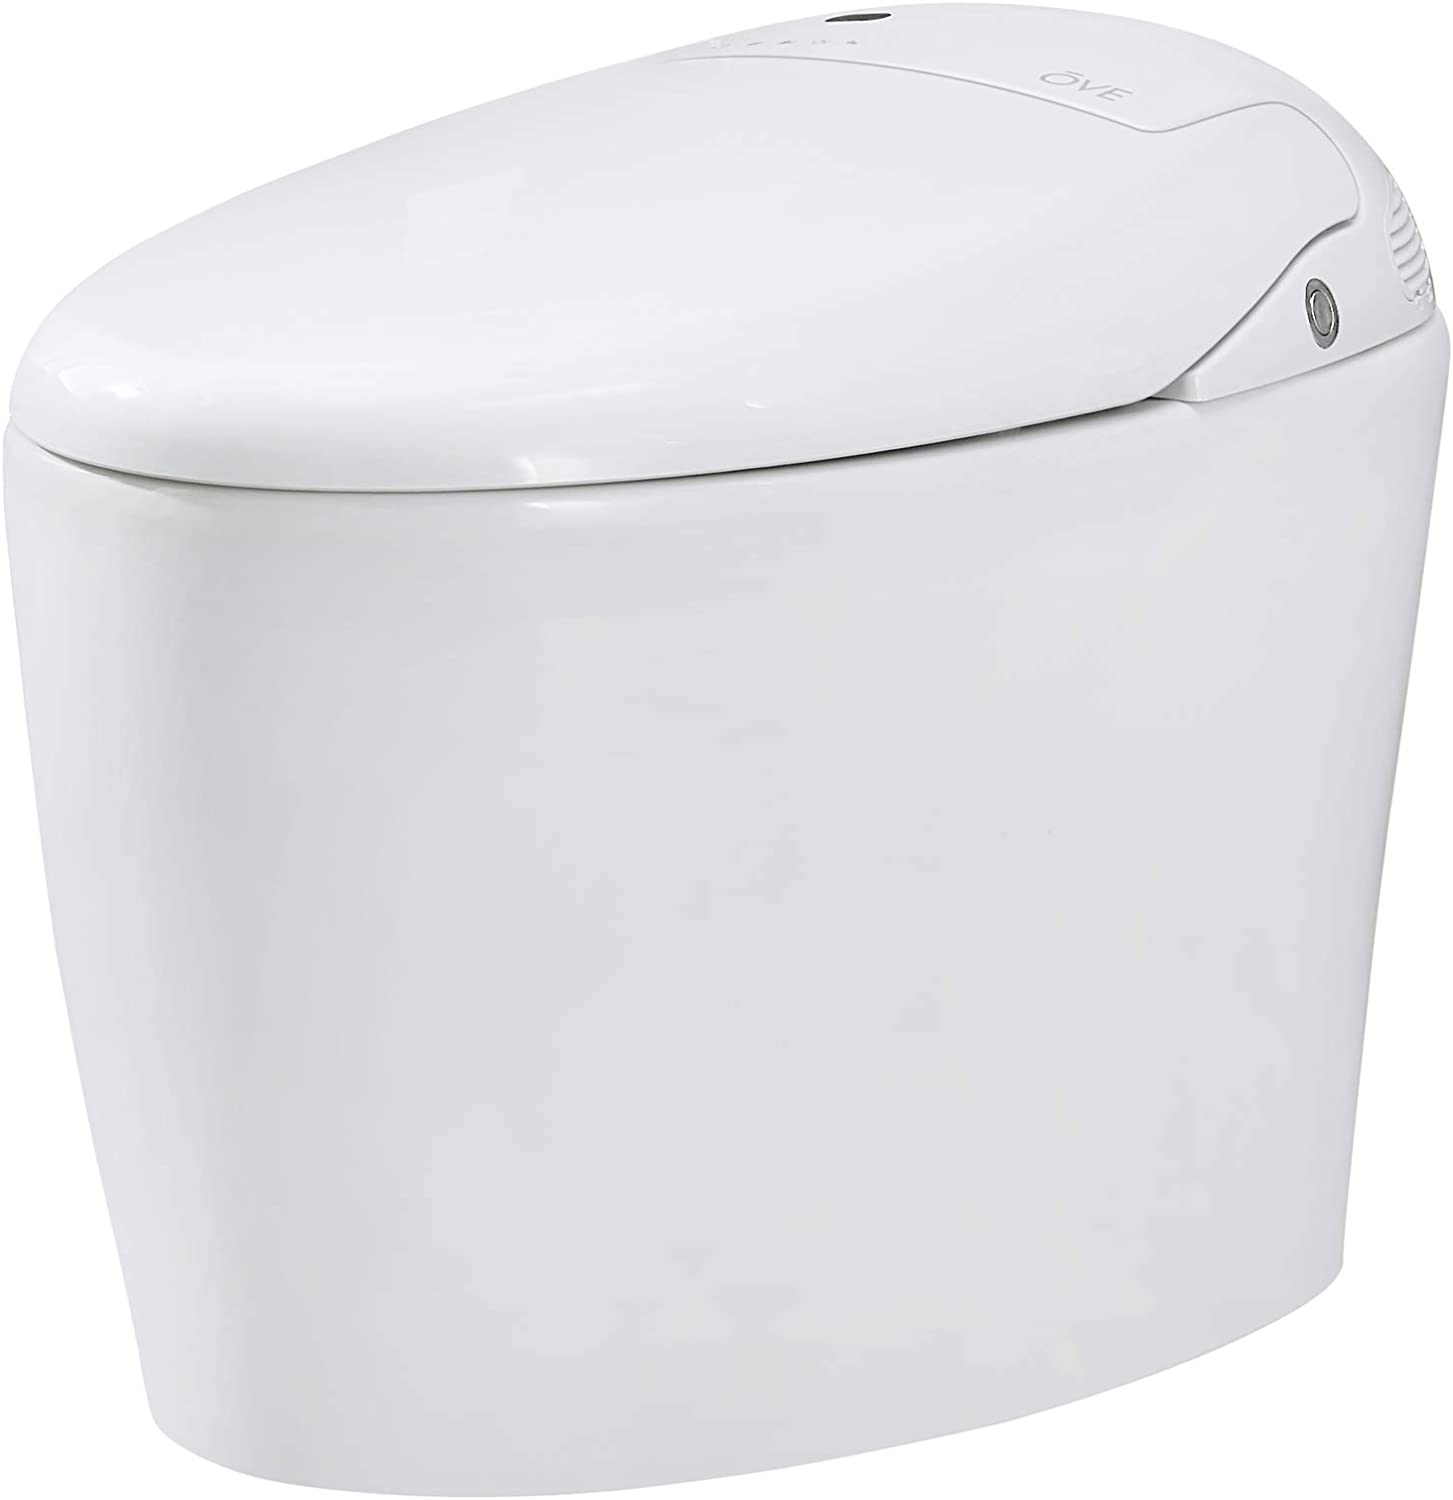 best tankless toilets: Ove Decors Tuva Tankless Eco Smart Toilet